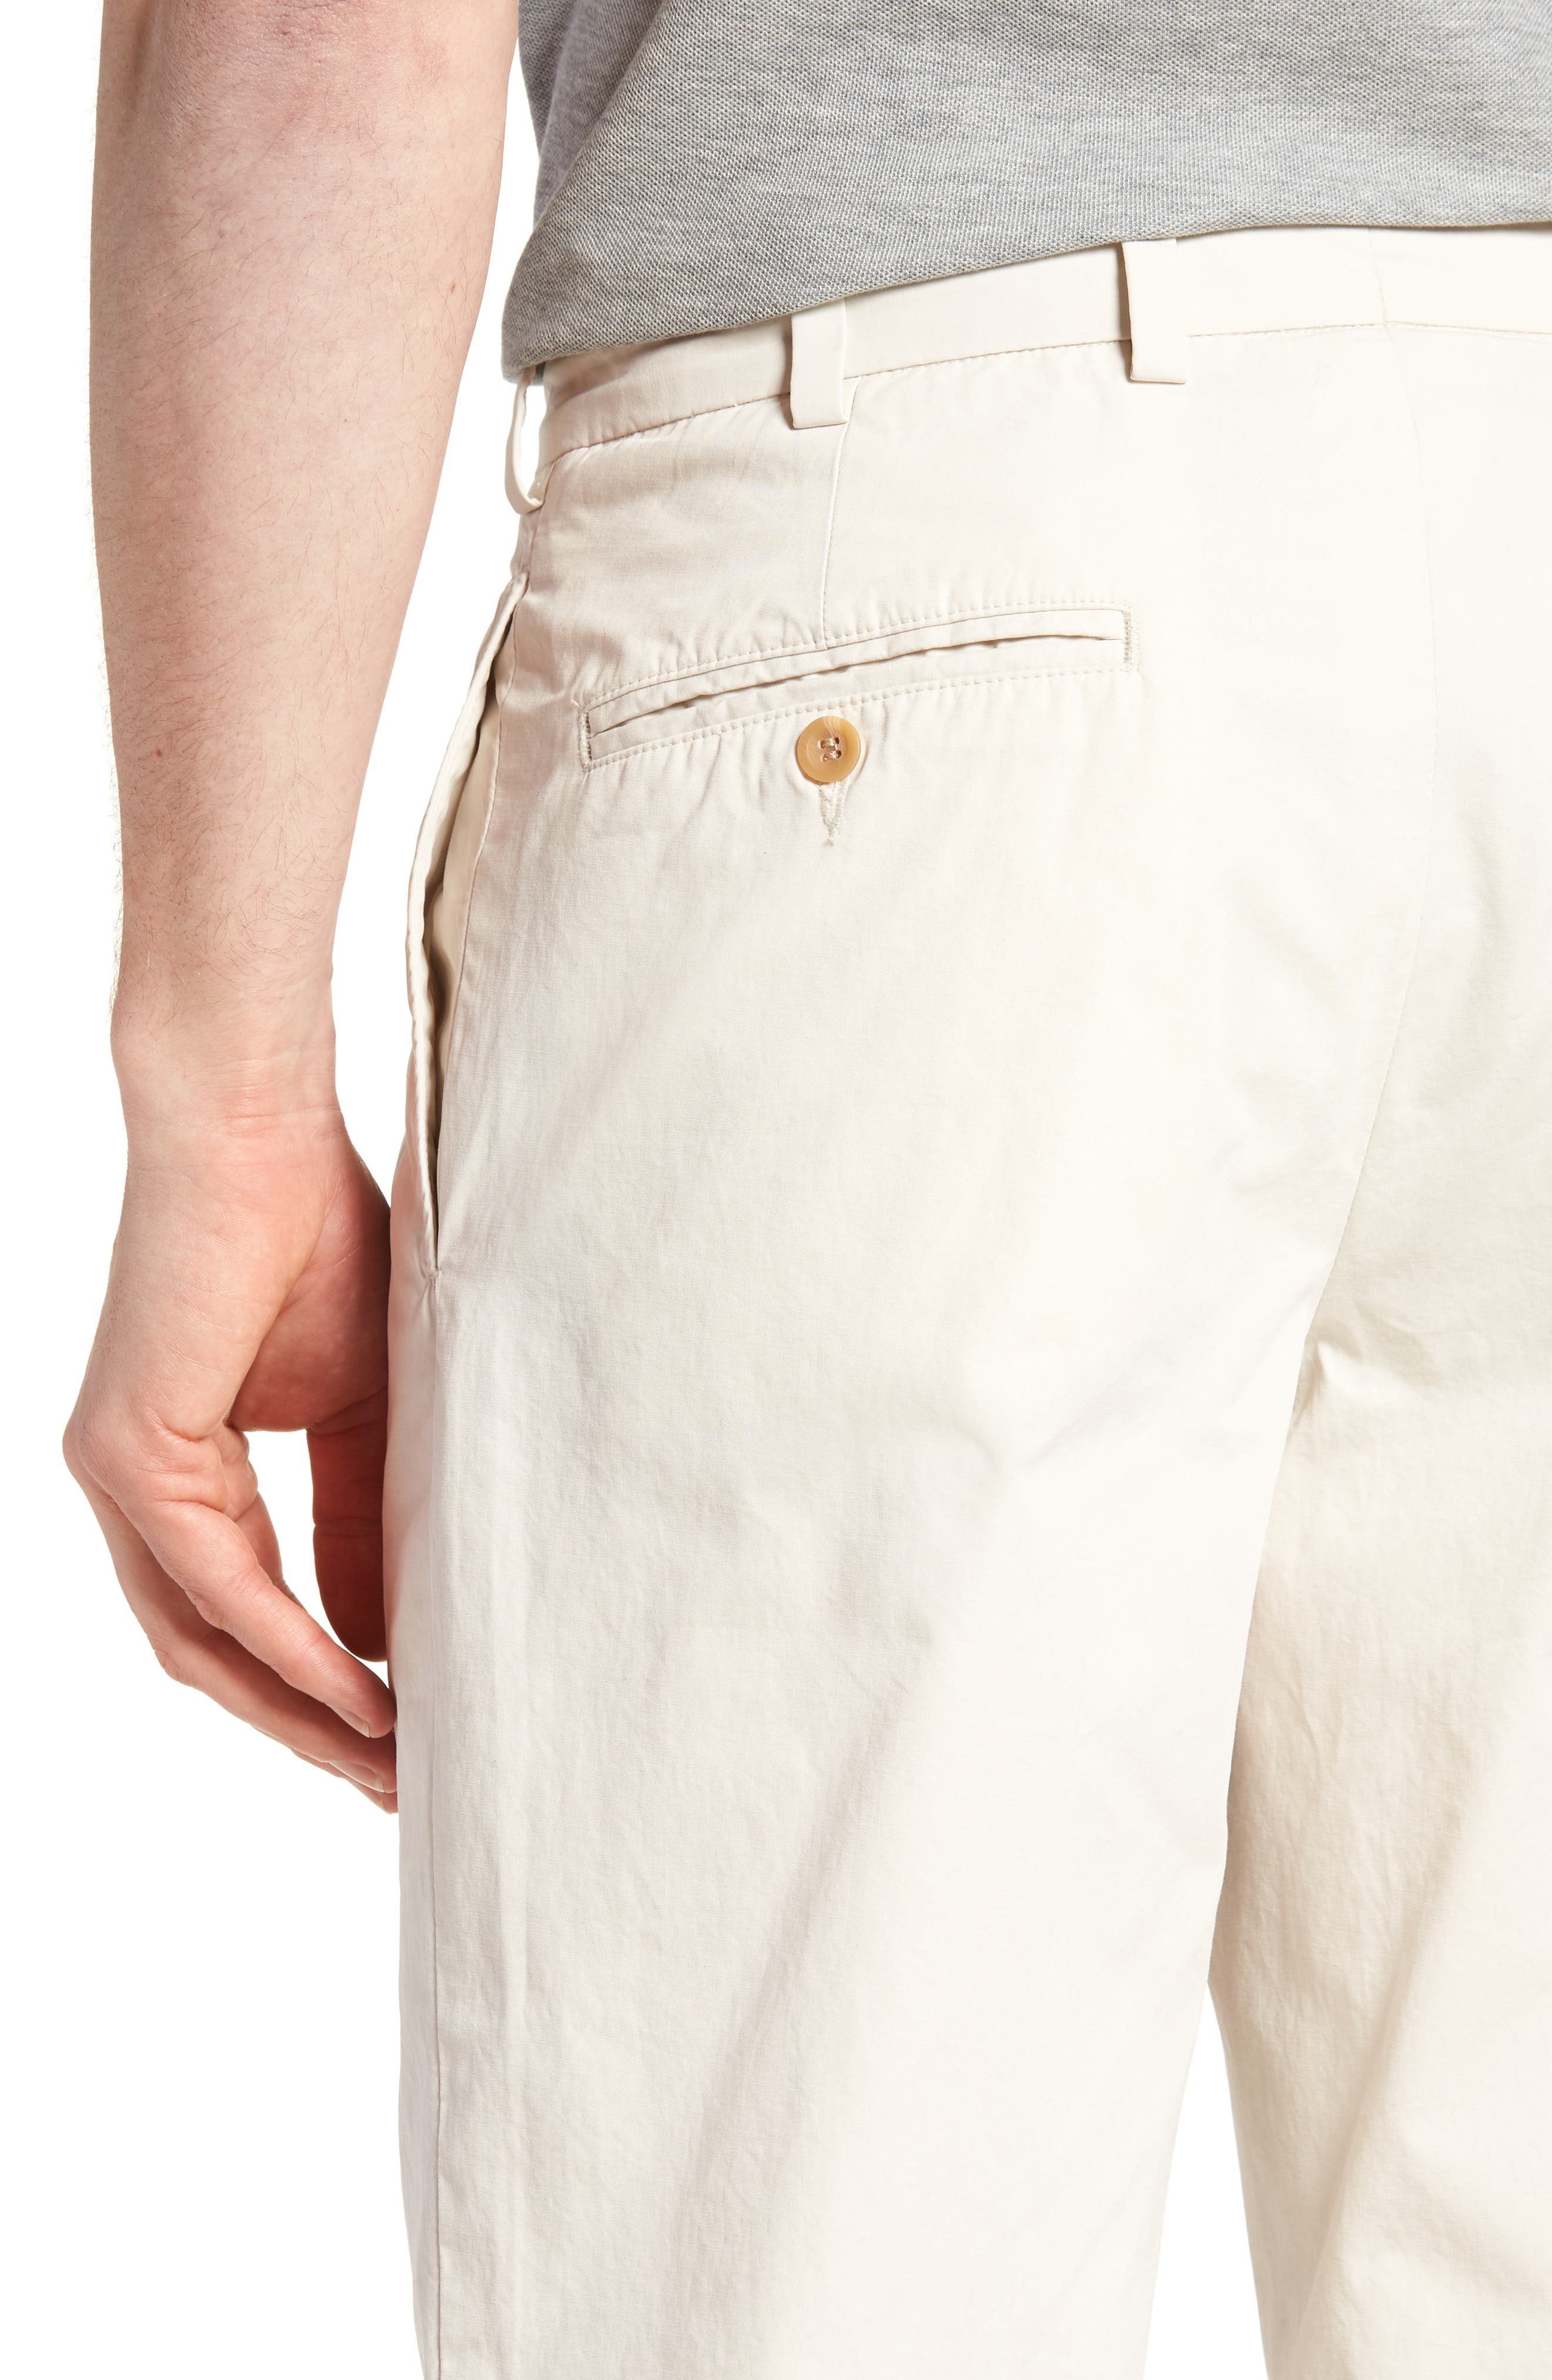 M2 Classic Fit Pleated Tropical Cotton Poplin Pants,                             Alternate thumbnail 4, color,                             Sand